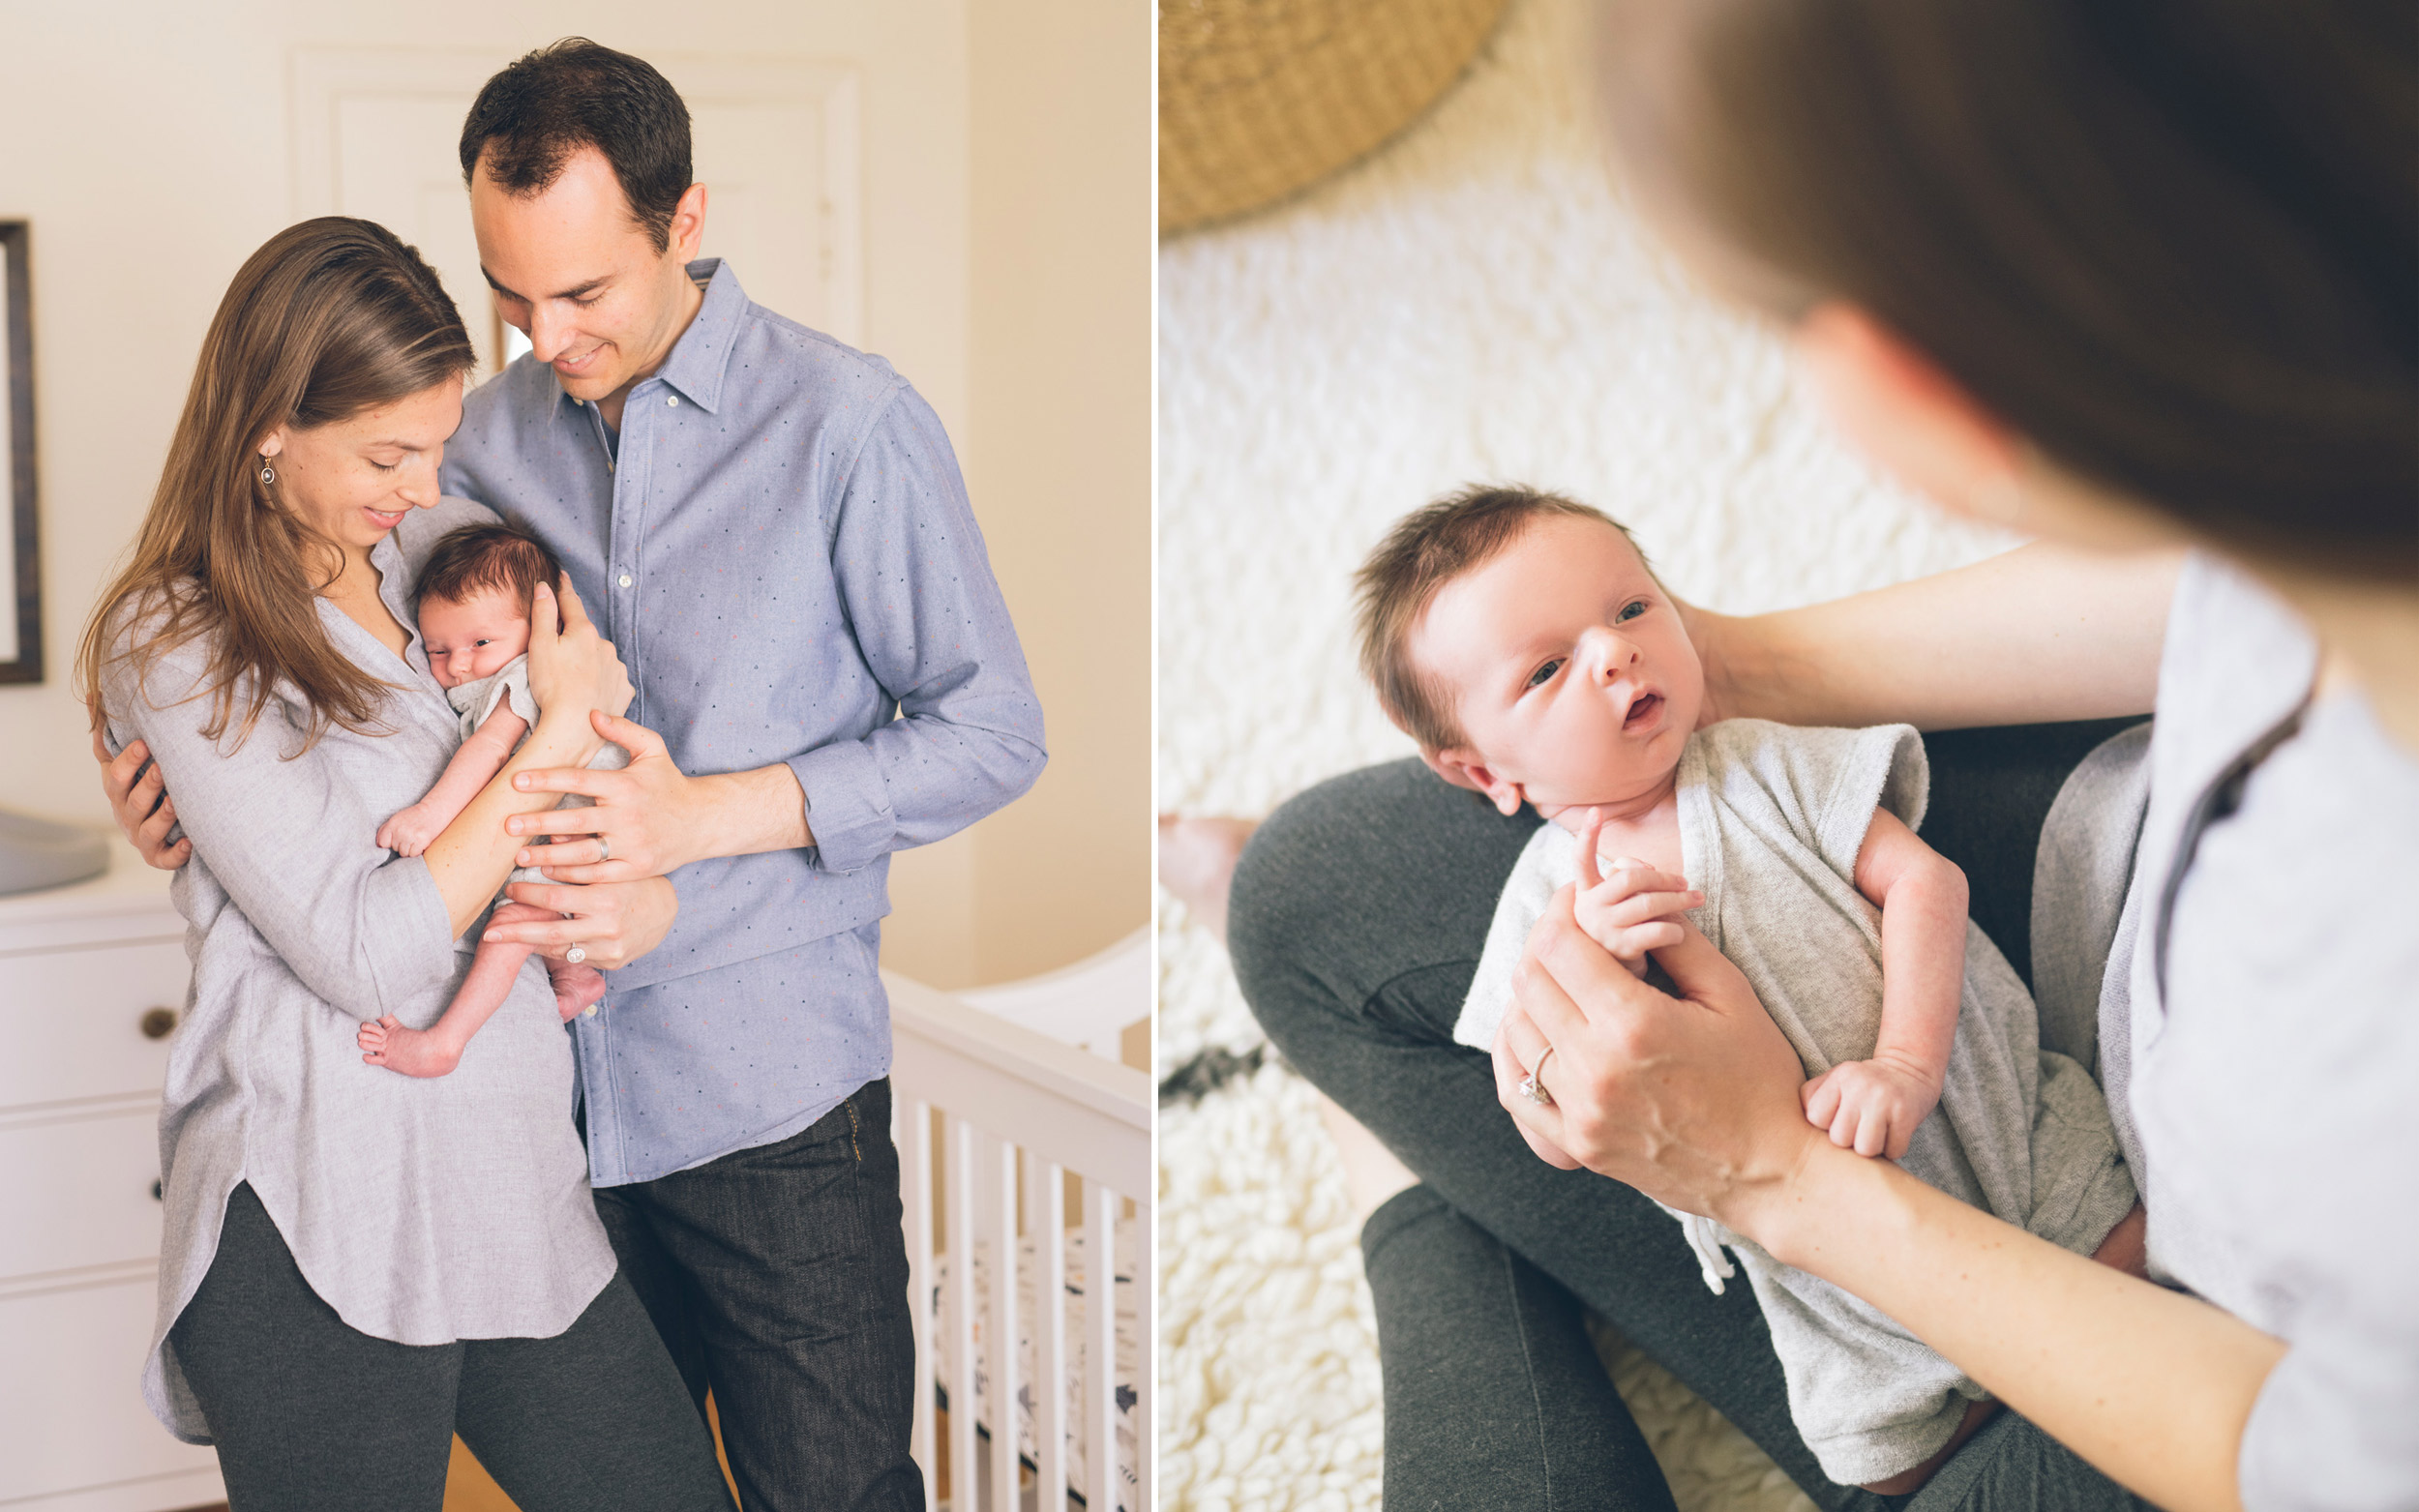 new-parents-with-baby.jpg